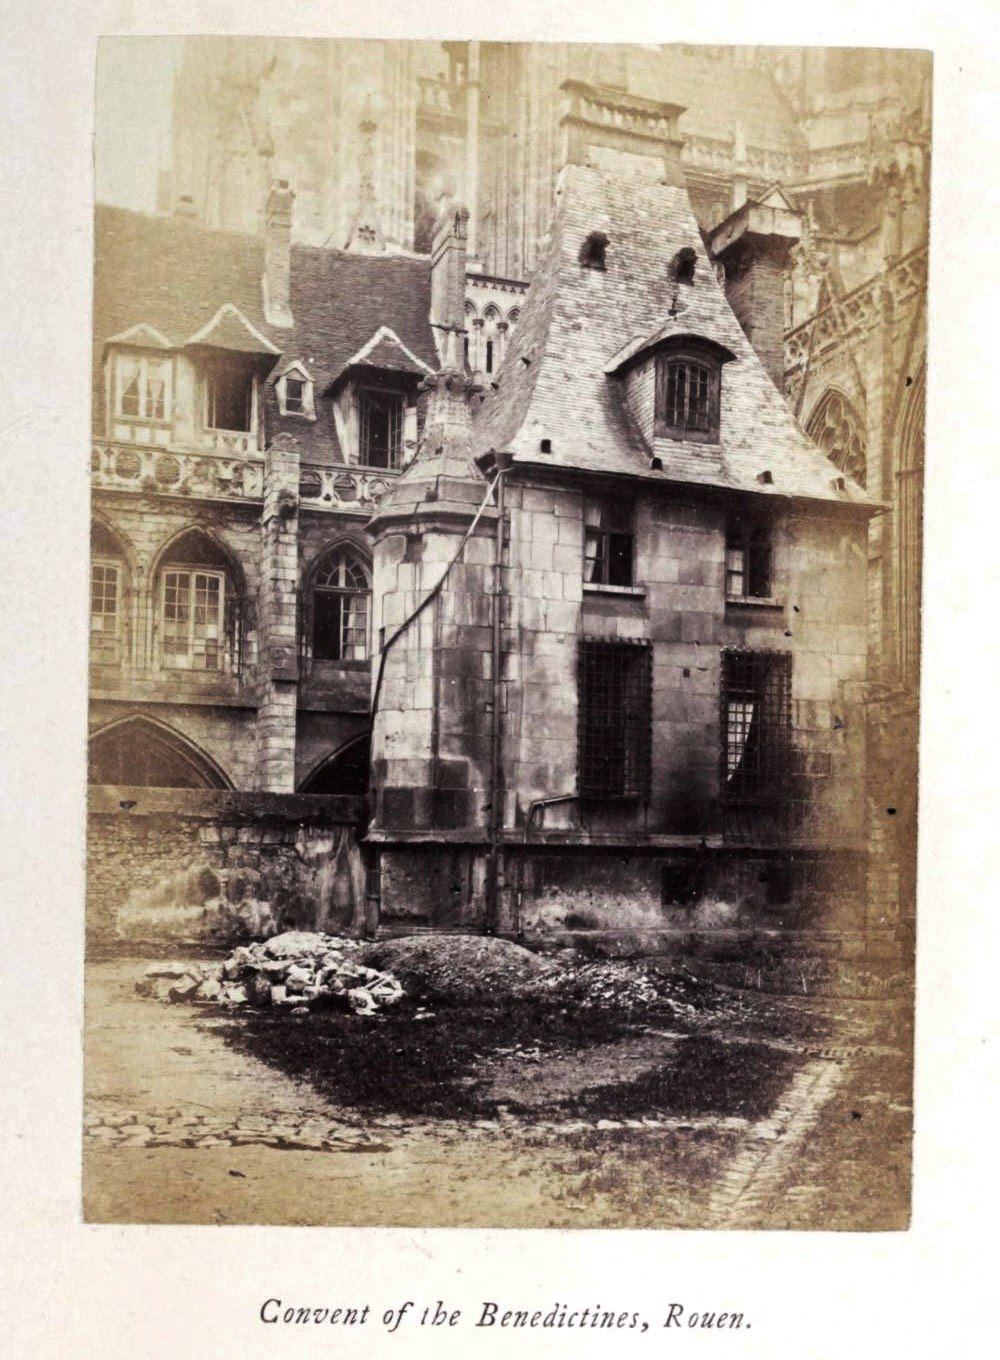 Convent of the Benedictine, Rouen, 1865 silver albumen photograph, Normandy